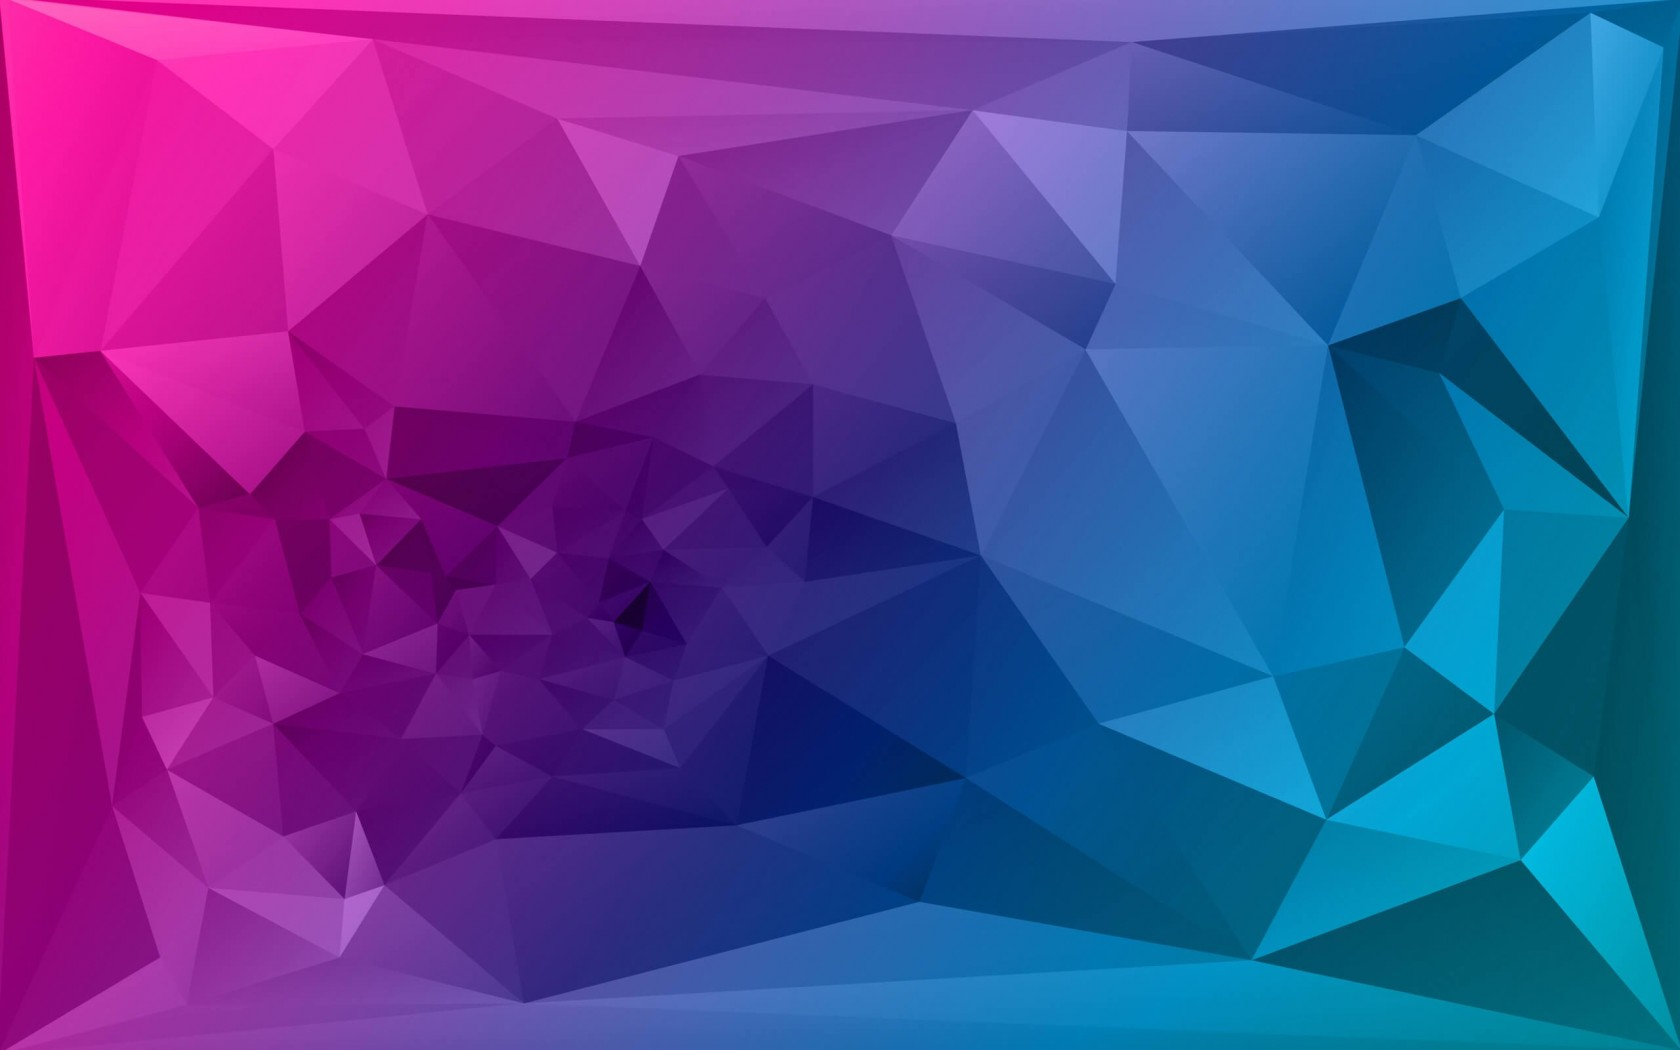 Purple Polygonal Background Wallpaper for Desktop 1680x1050